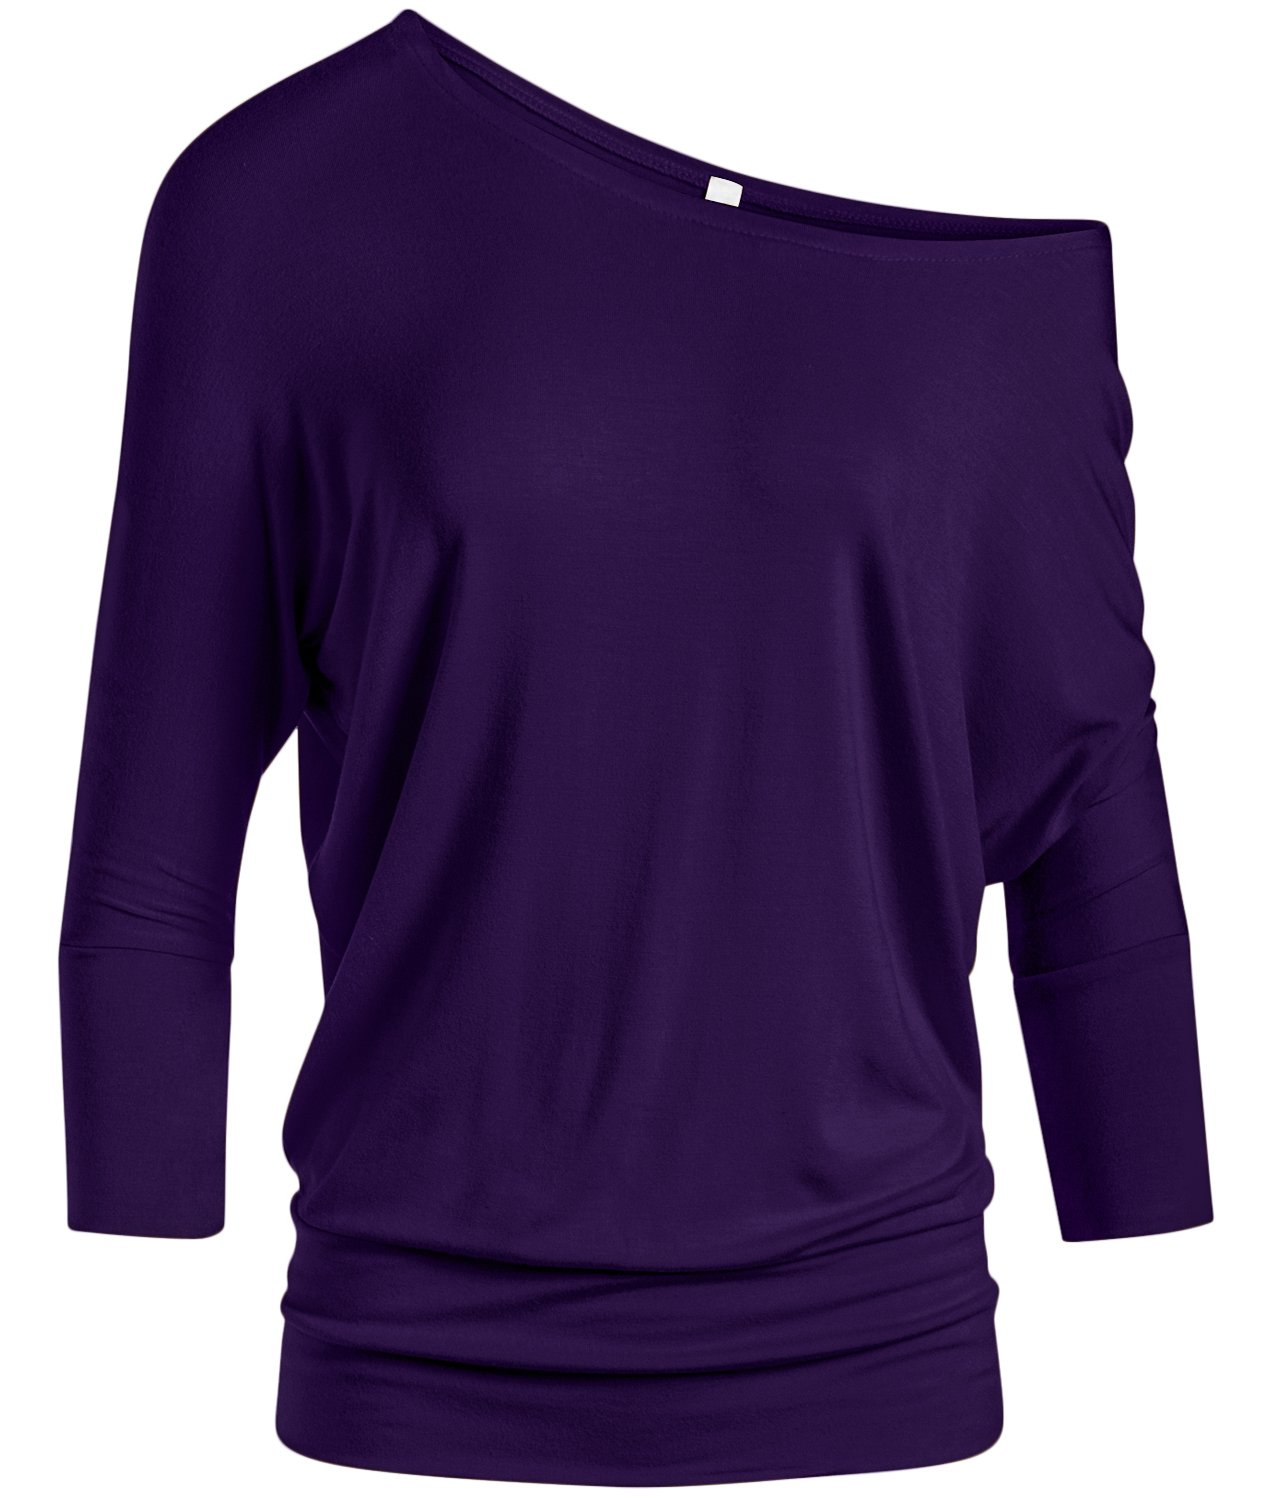 Simlu Dolman 3/4 Sleeve Drape Round Neck Top With Banded Waist - Made In USA, Purple, Small